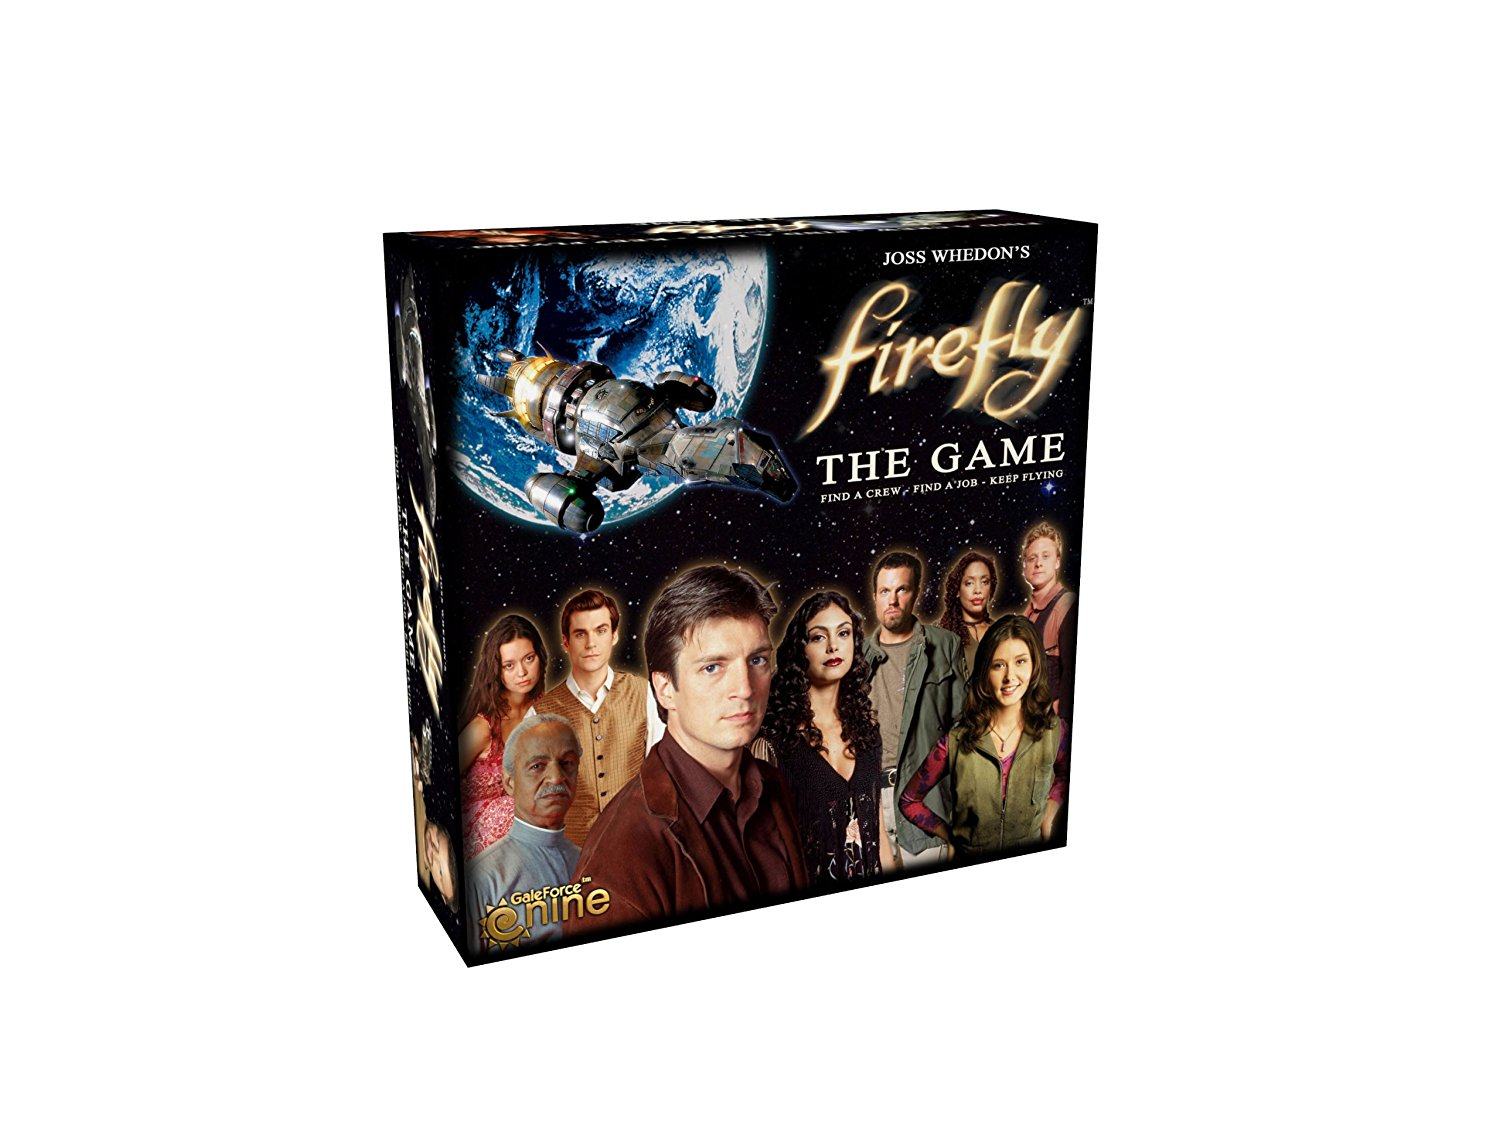 High Resolution Wallpaper | Firefly: The Board Game 1500x1125 px